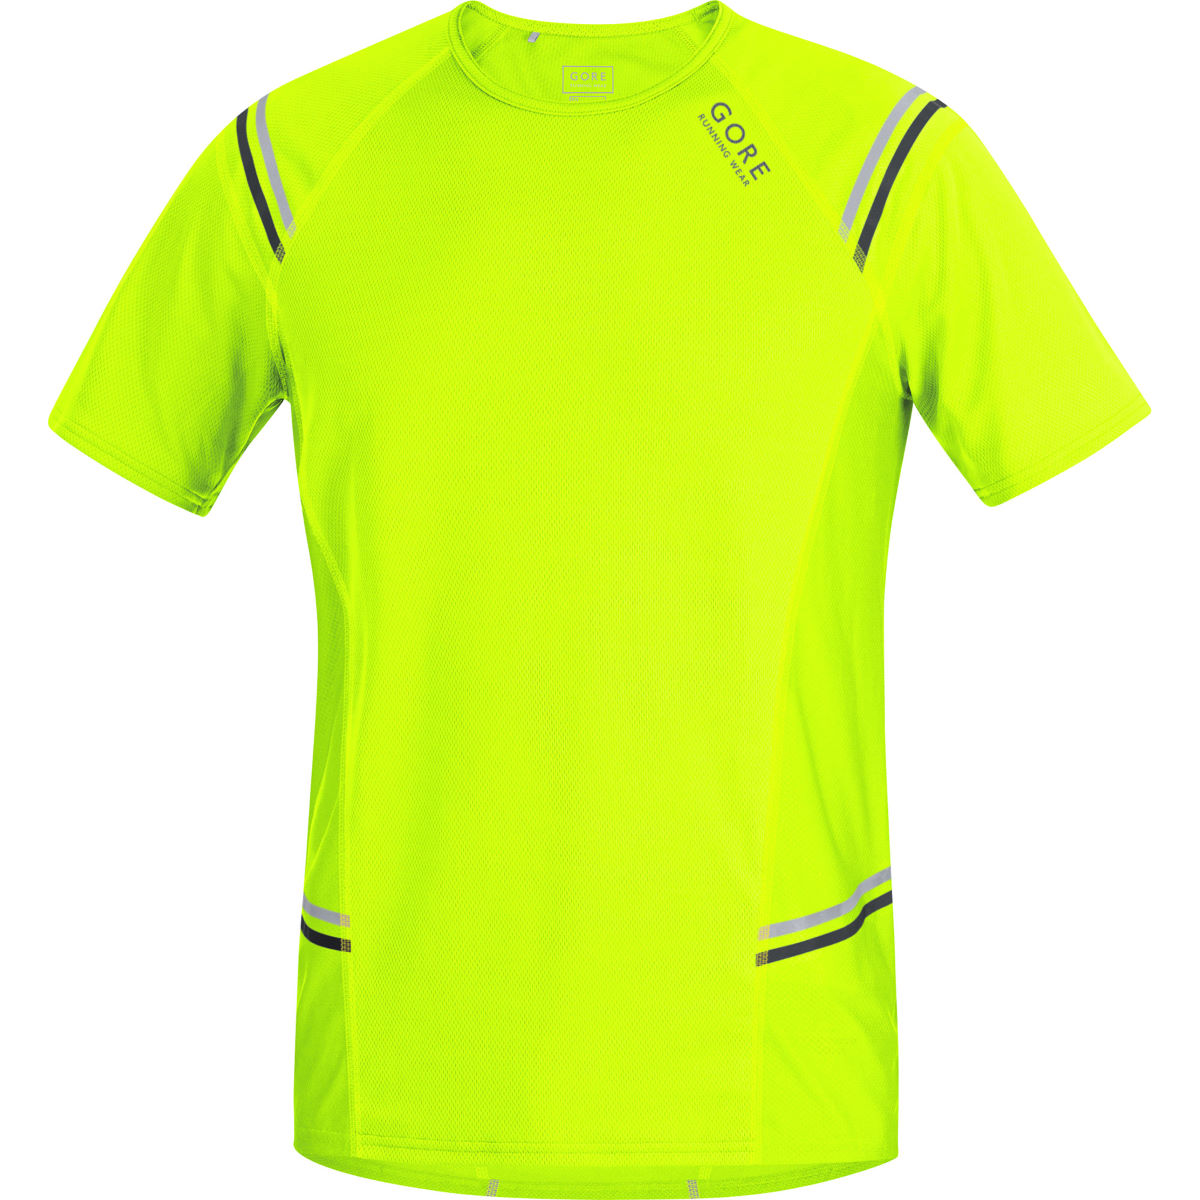 Maillot Gore Running Wear Mythos 6.0 - M neon yellow